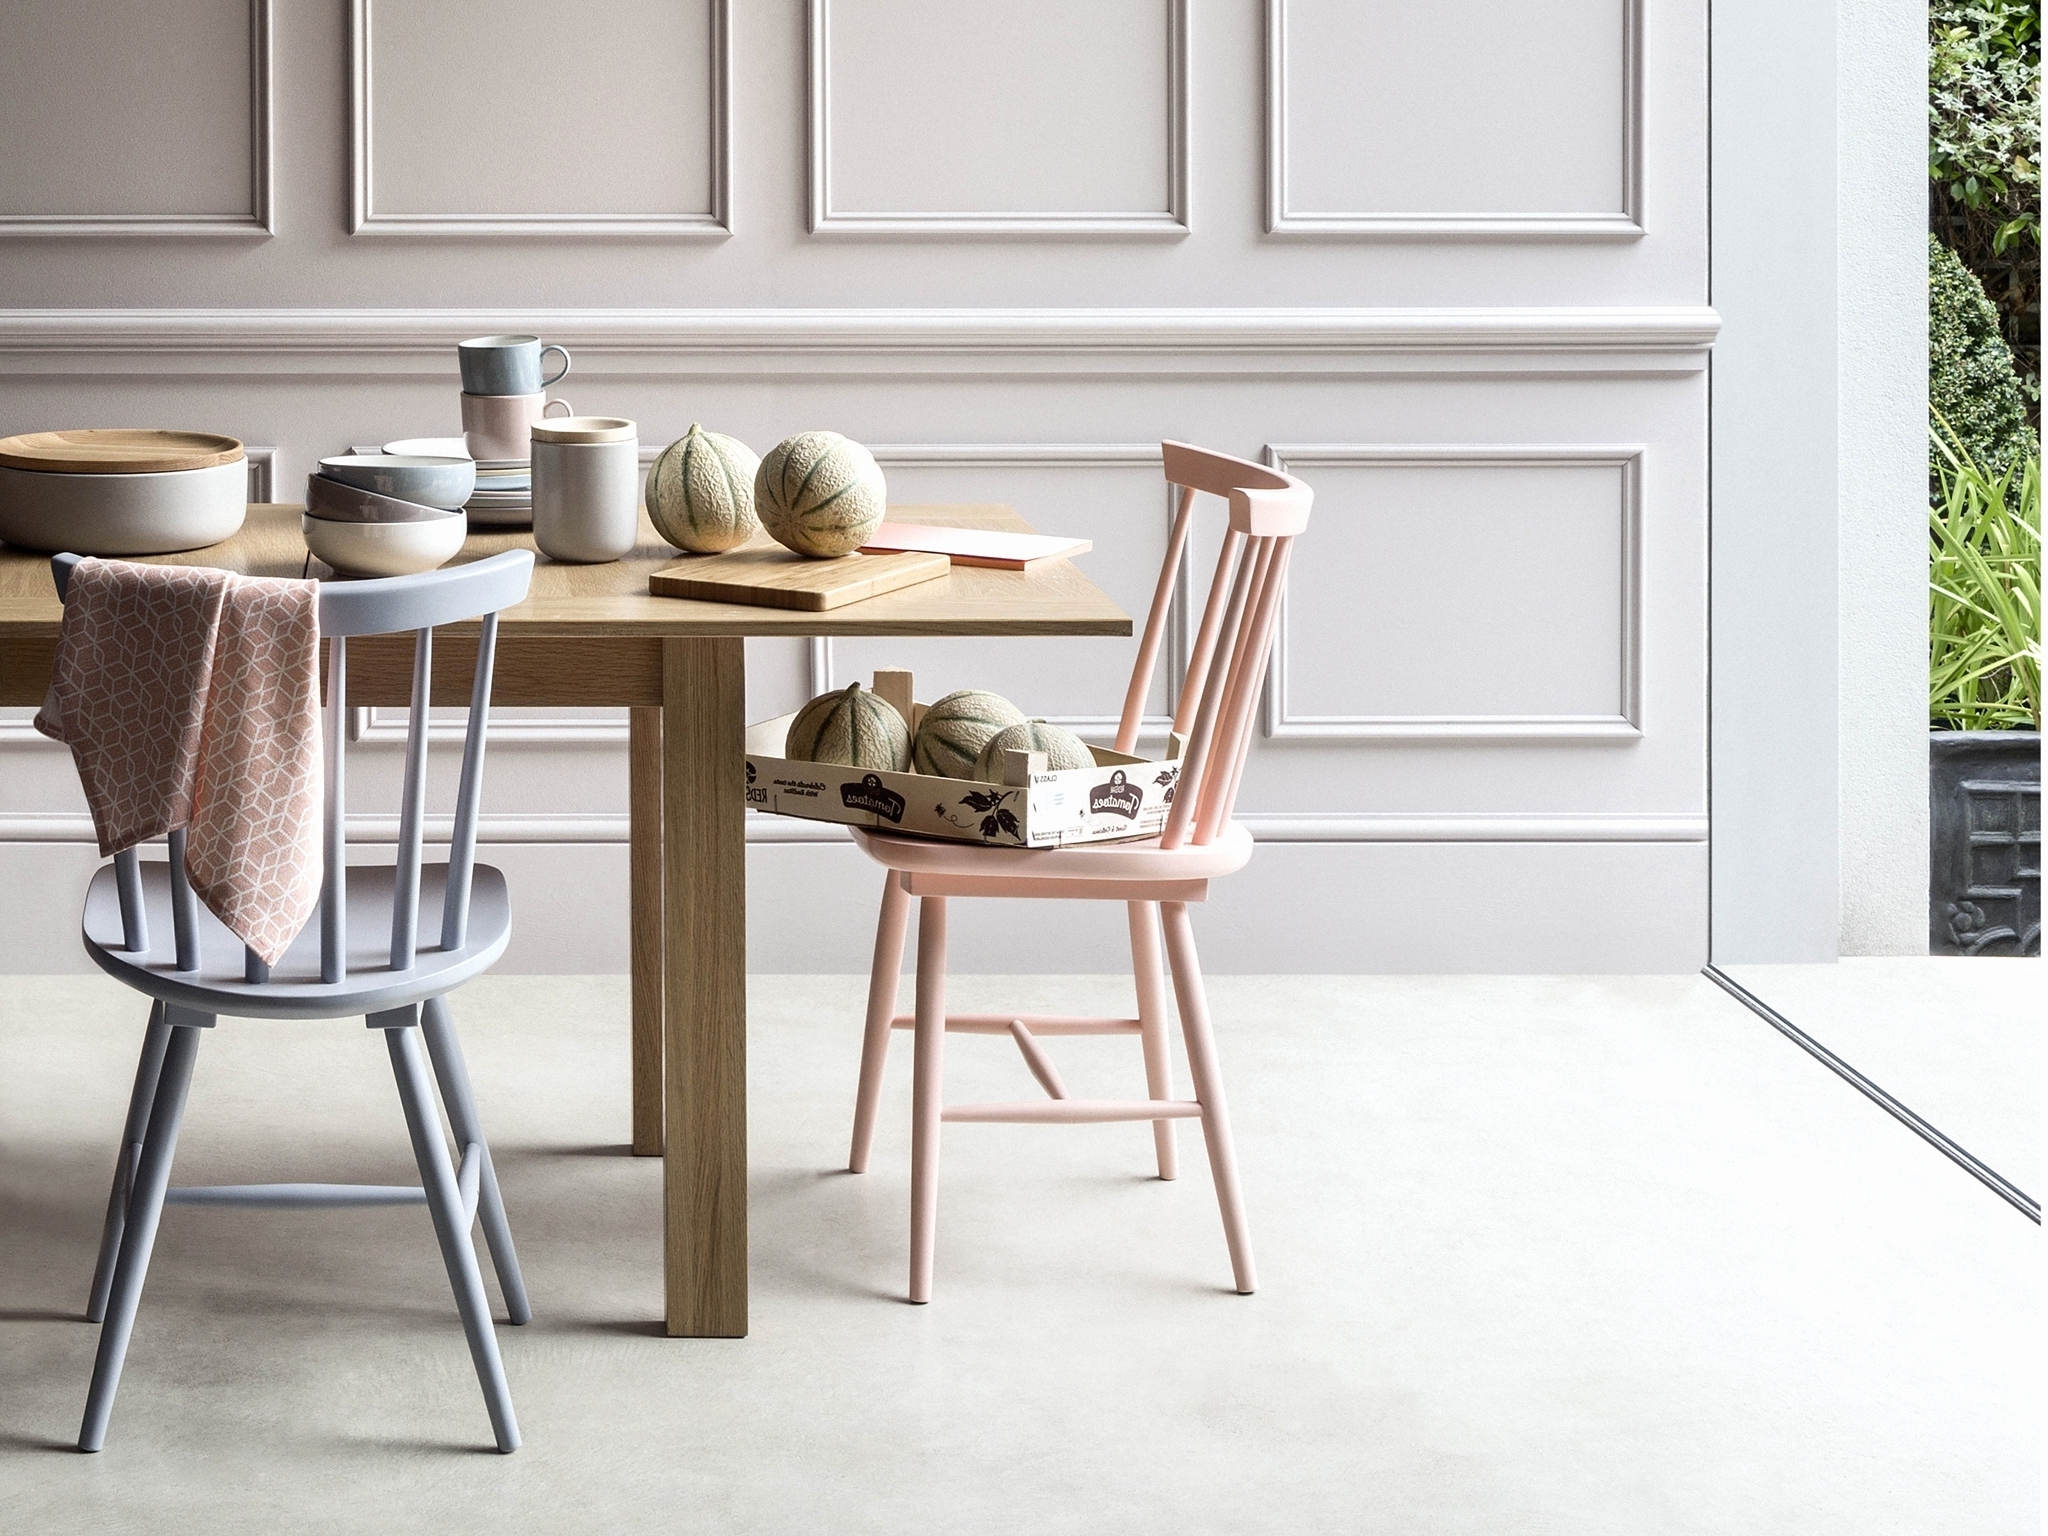 Marks And Spencer Sofas And Chairs With Regard To Widely Used Marks And Spencer Sofas And Armchairs Lovely 10 Best Dining Chairs (View 15 of 20)